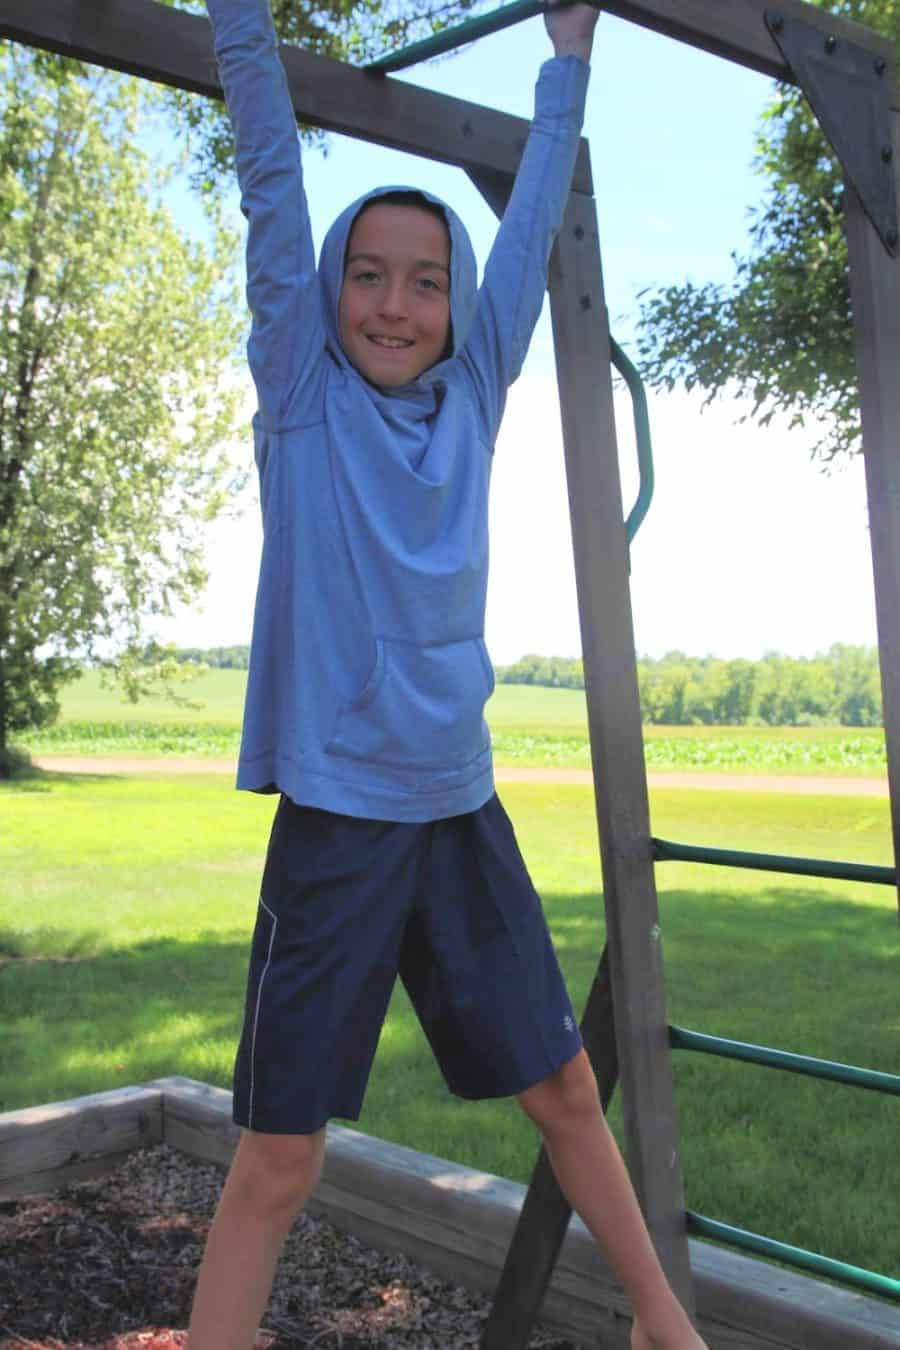 Boy on monkey bars - Sun And Water Safety Tips - Keeping Kids Safe